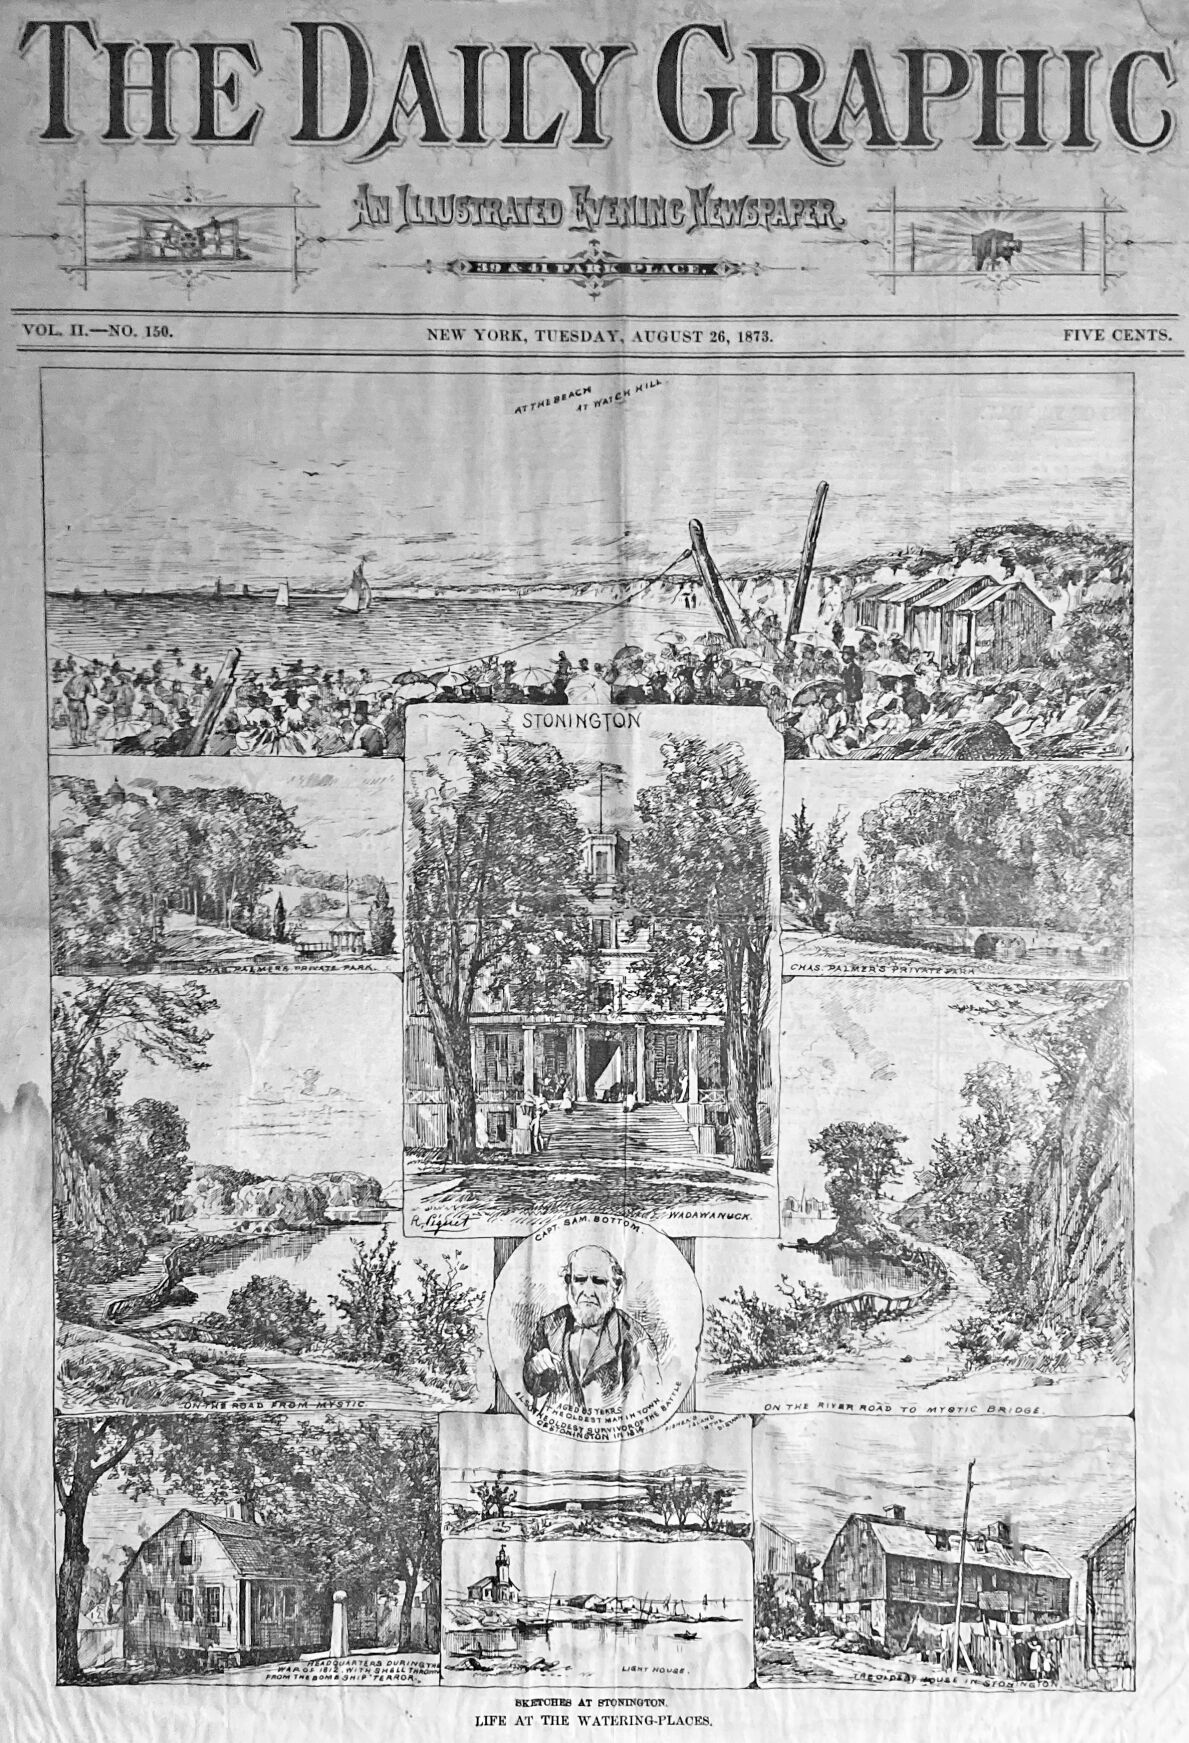 011021 Slosberg Daily Graphic cover.jpg